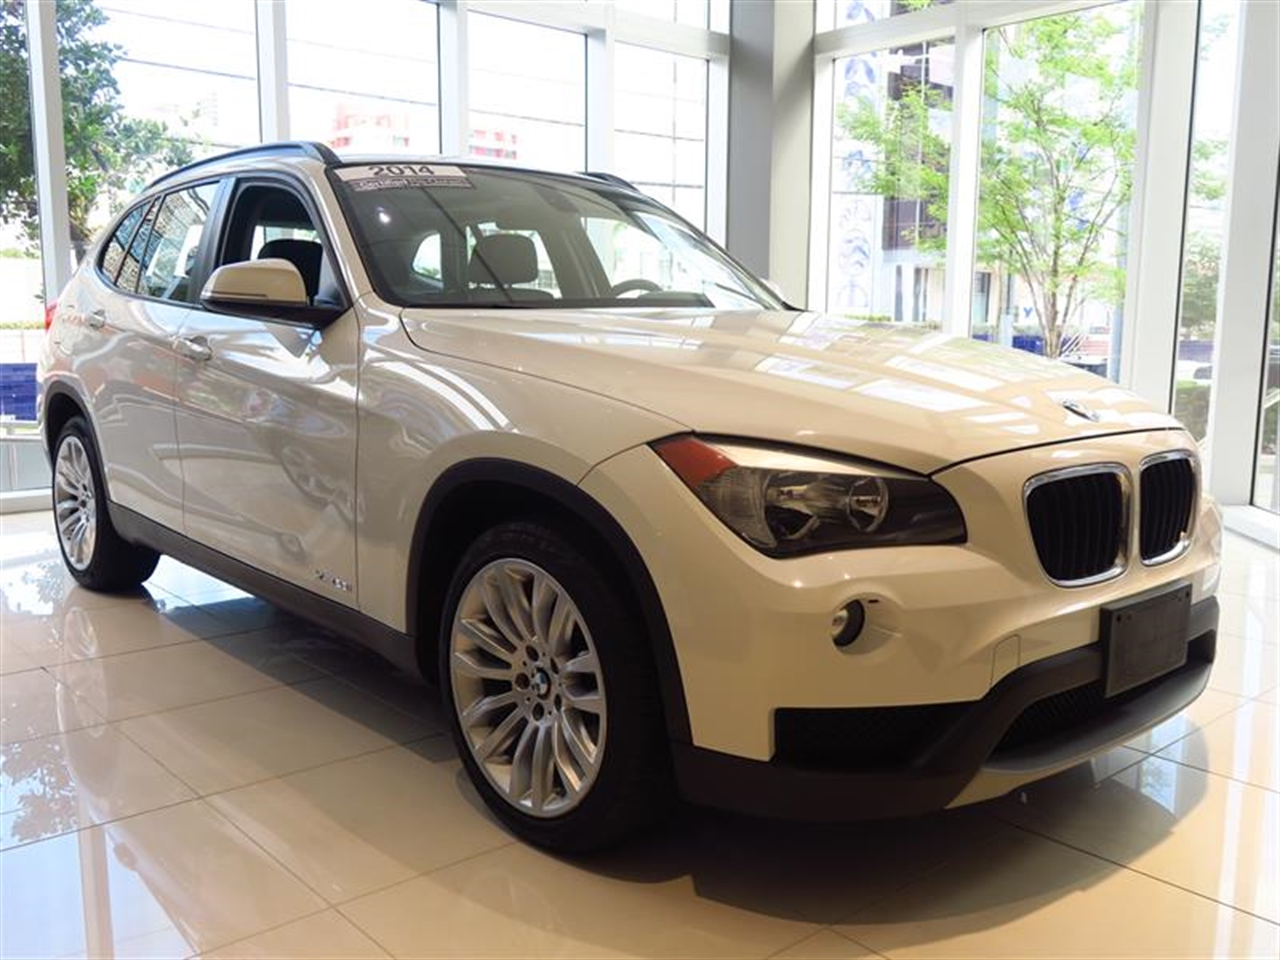 2014 BMW X1 AWD 4dr xDrive28i 6393 miles 2 Seatback Storage Pockets 3 12V DC Power Outlets LEATH